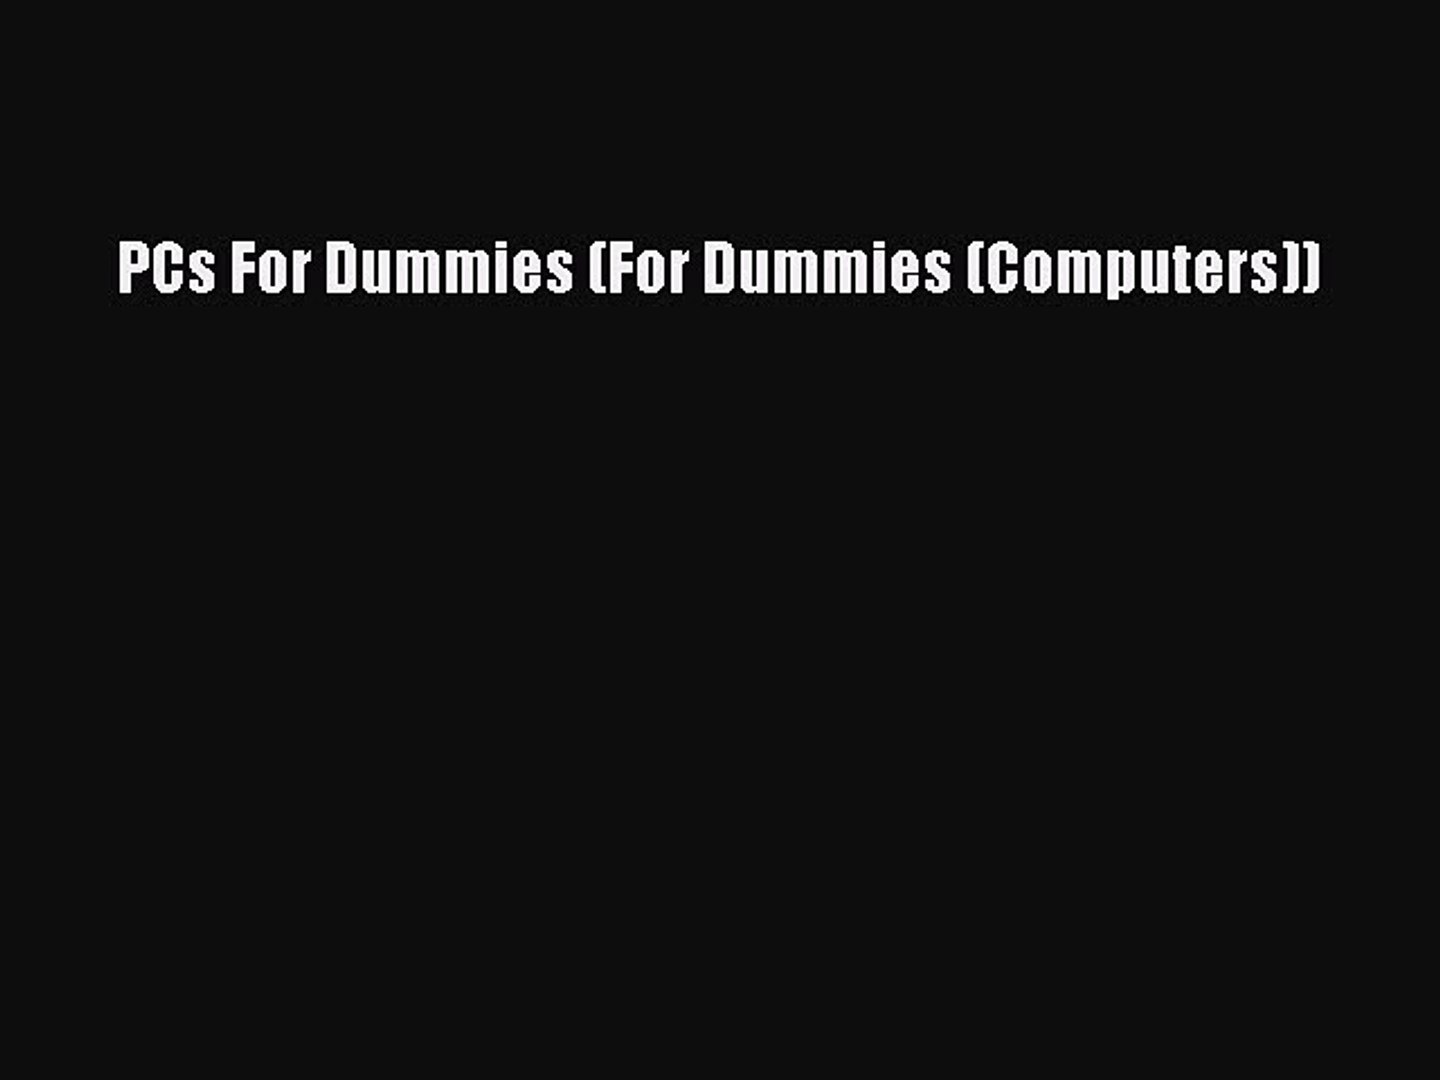 Read PCs For Dummies (For Dummies (Computers)) Ebook Free